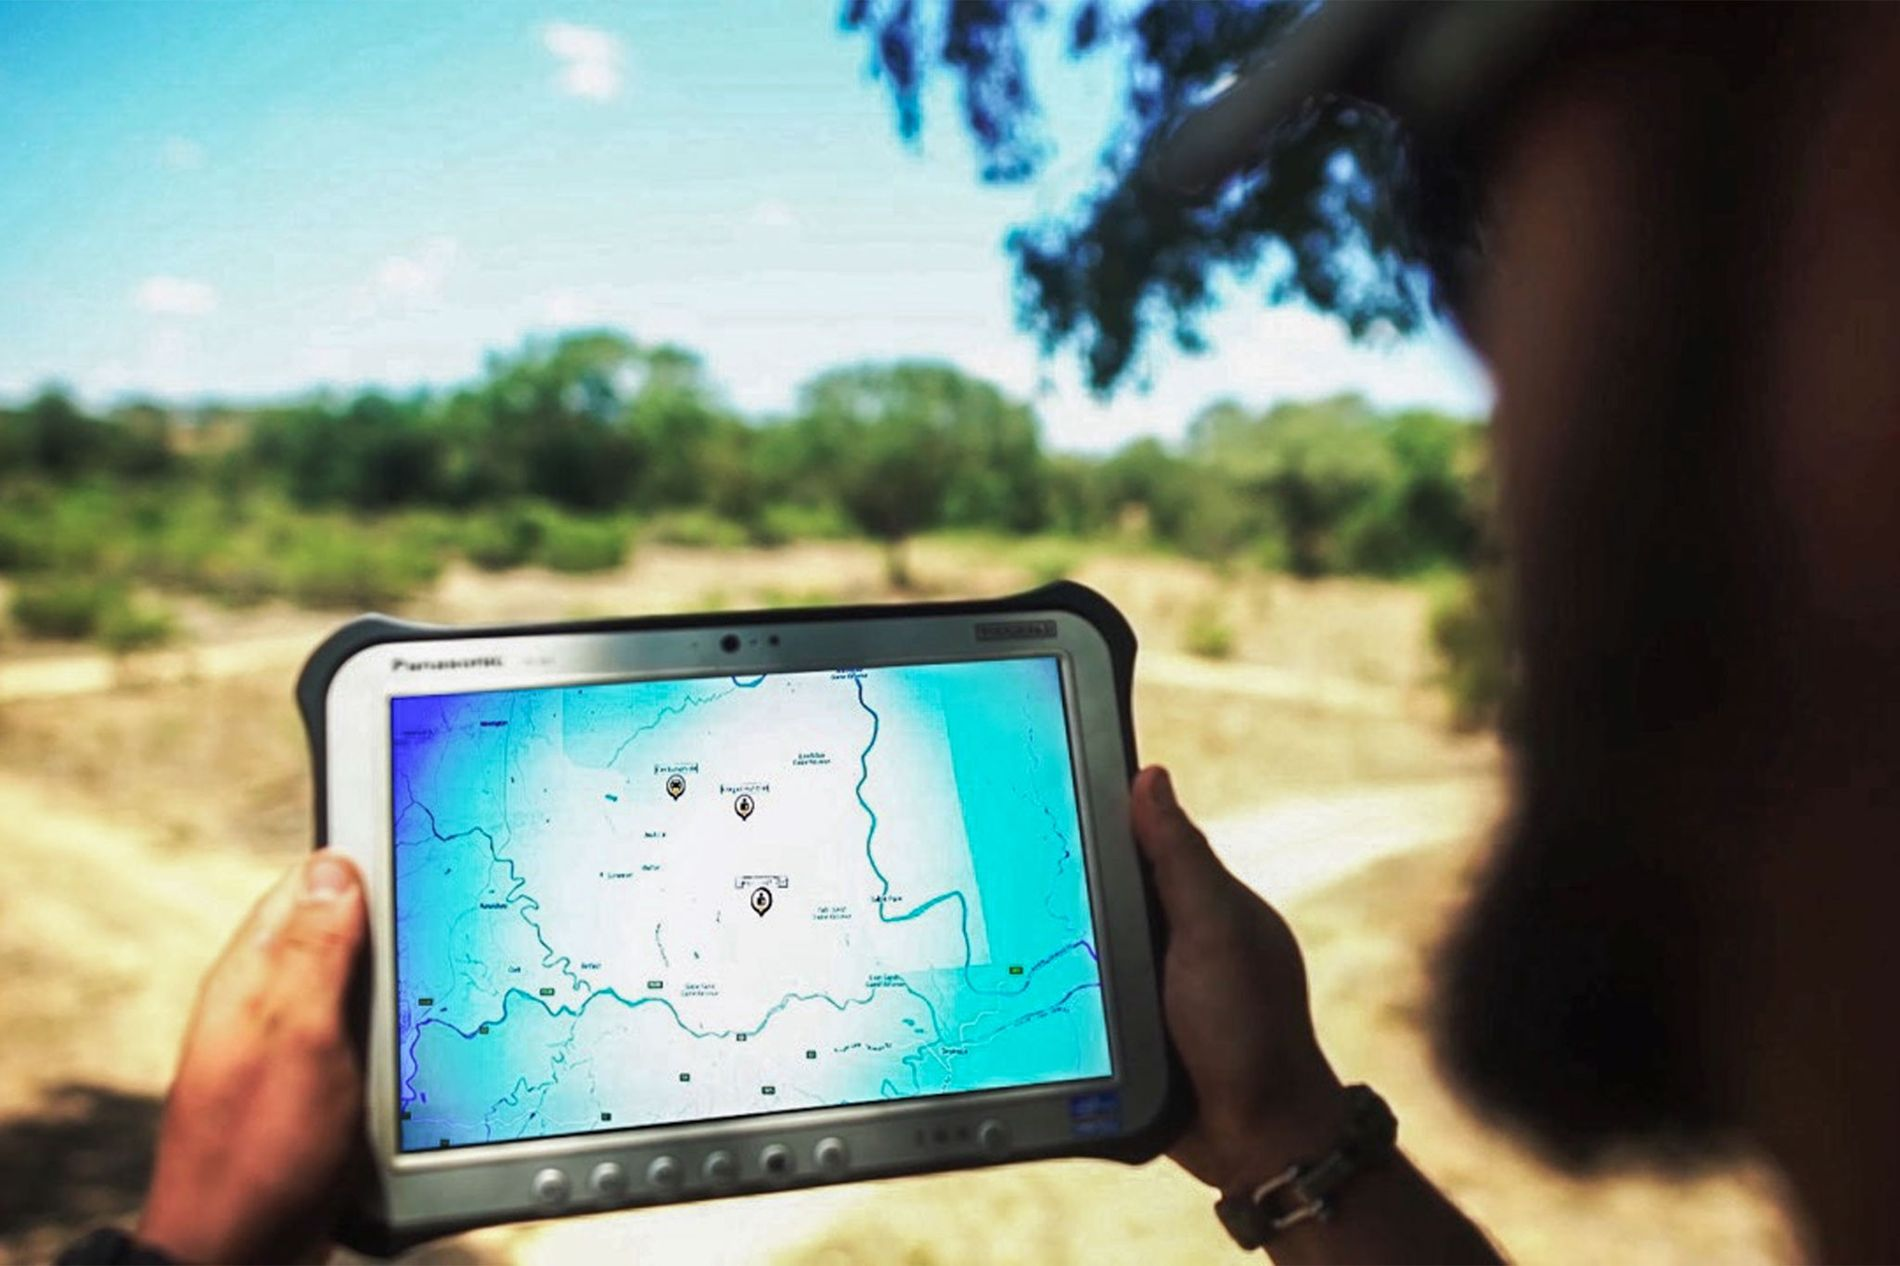 A new, high-tech alarm system helps rangers in a reserve in South Africa stop poachers from killing rhinos and other wildlife.